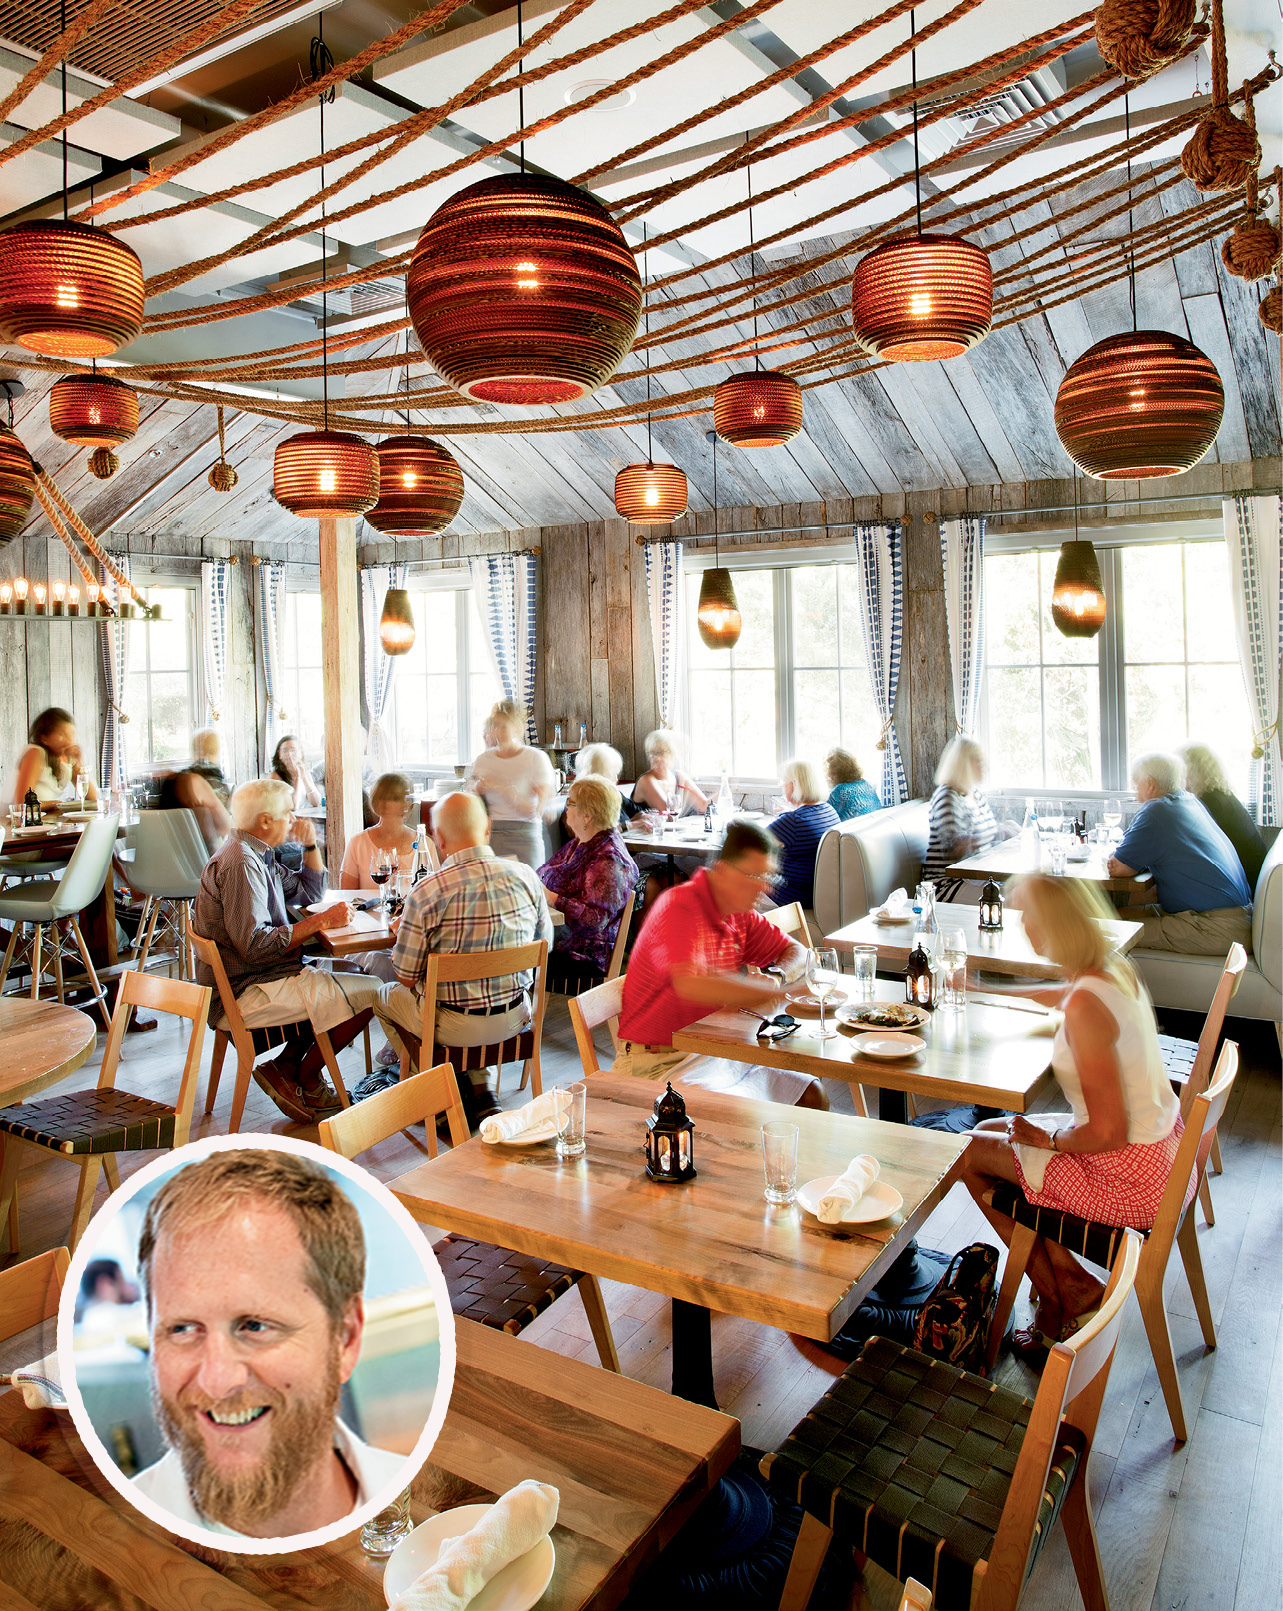 OFF THE PENINSULA: The Obstinate Daughter, where executive chef Jacques Larson (inset) and team serve up Mediterranean-Lowcountry dishes